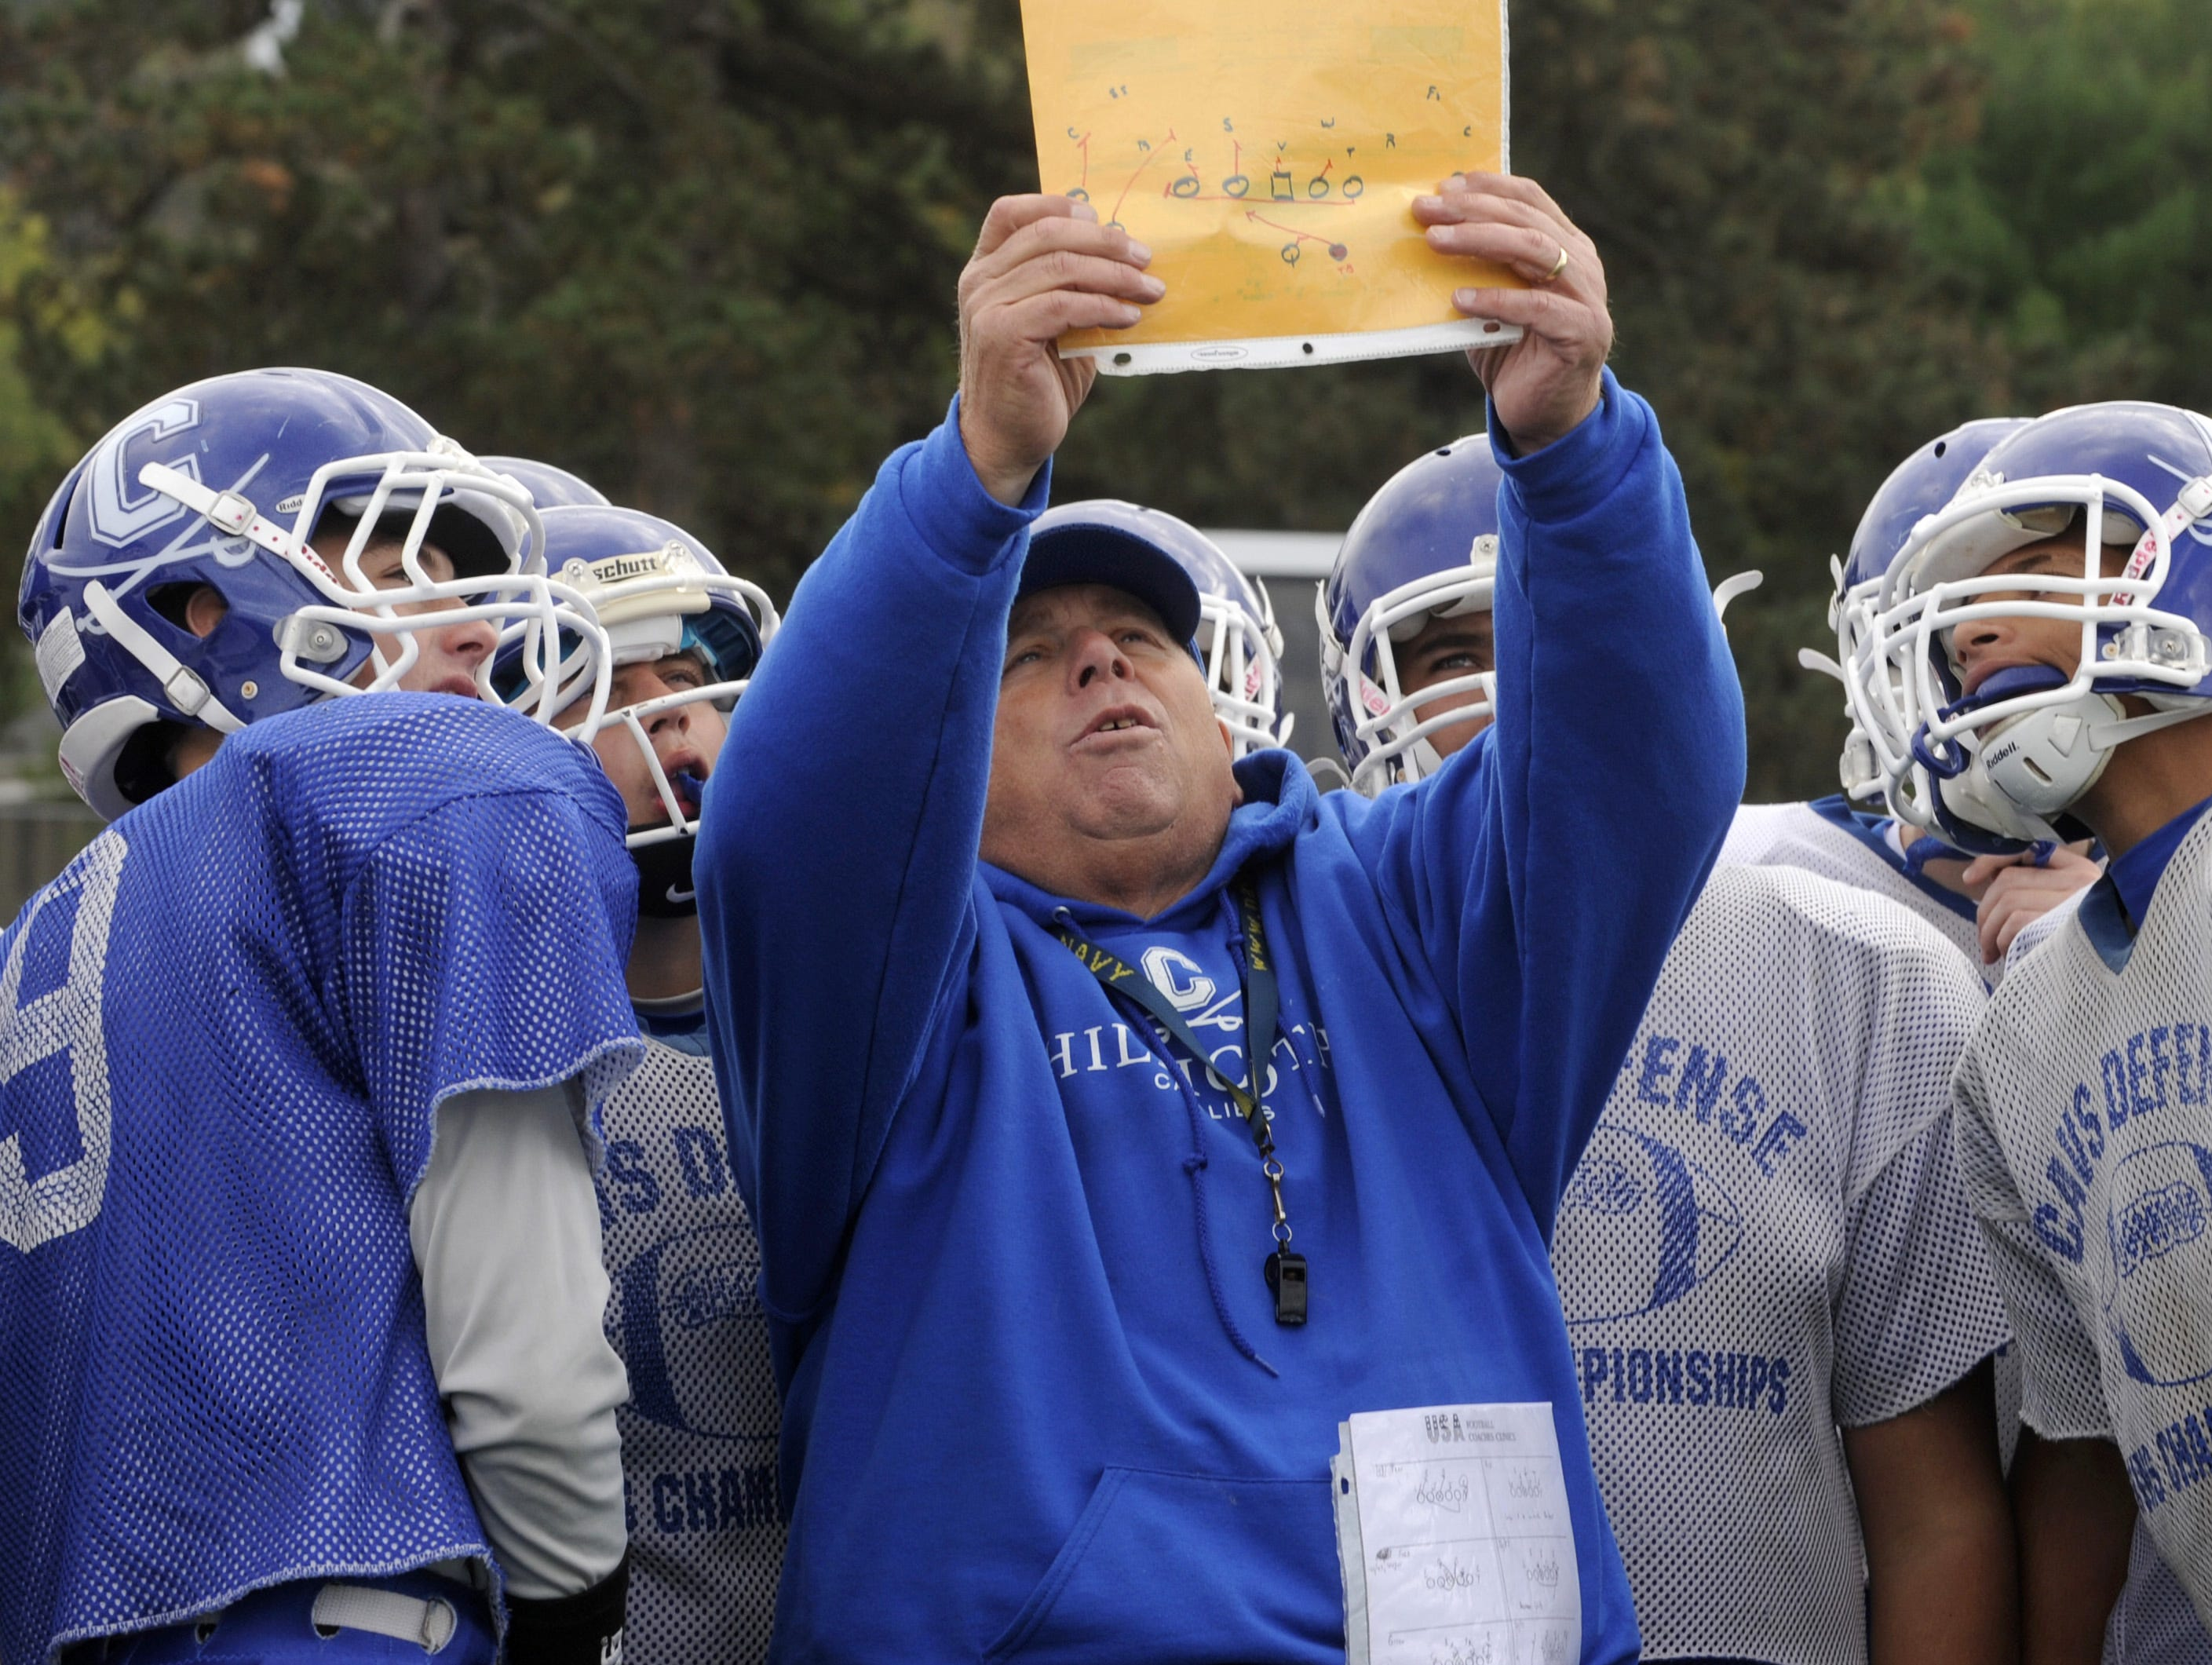 Chillicothe coach Ron Hinton reviews a play with players during an Oct. 23 practice at Herrnstein Field.